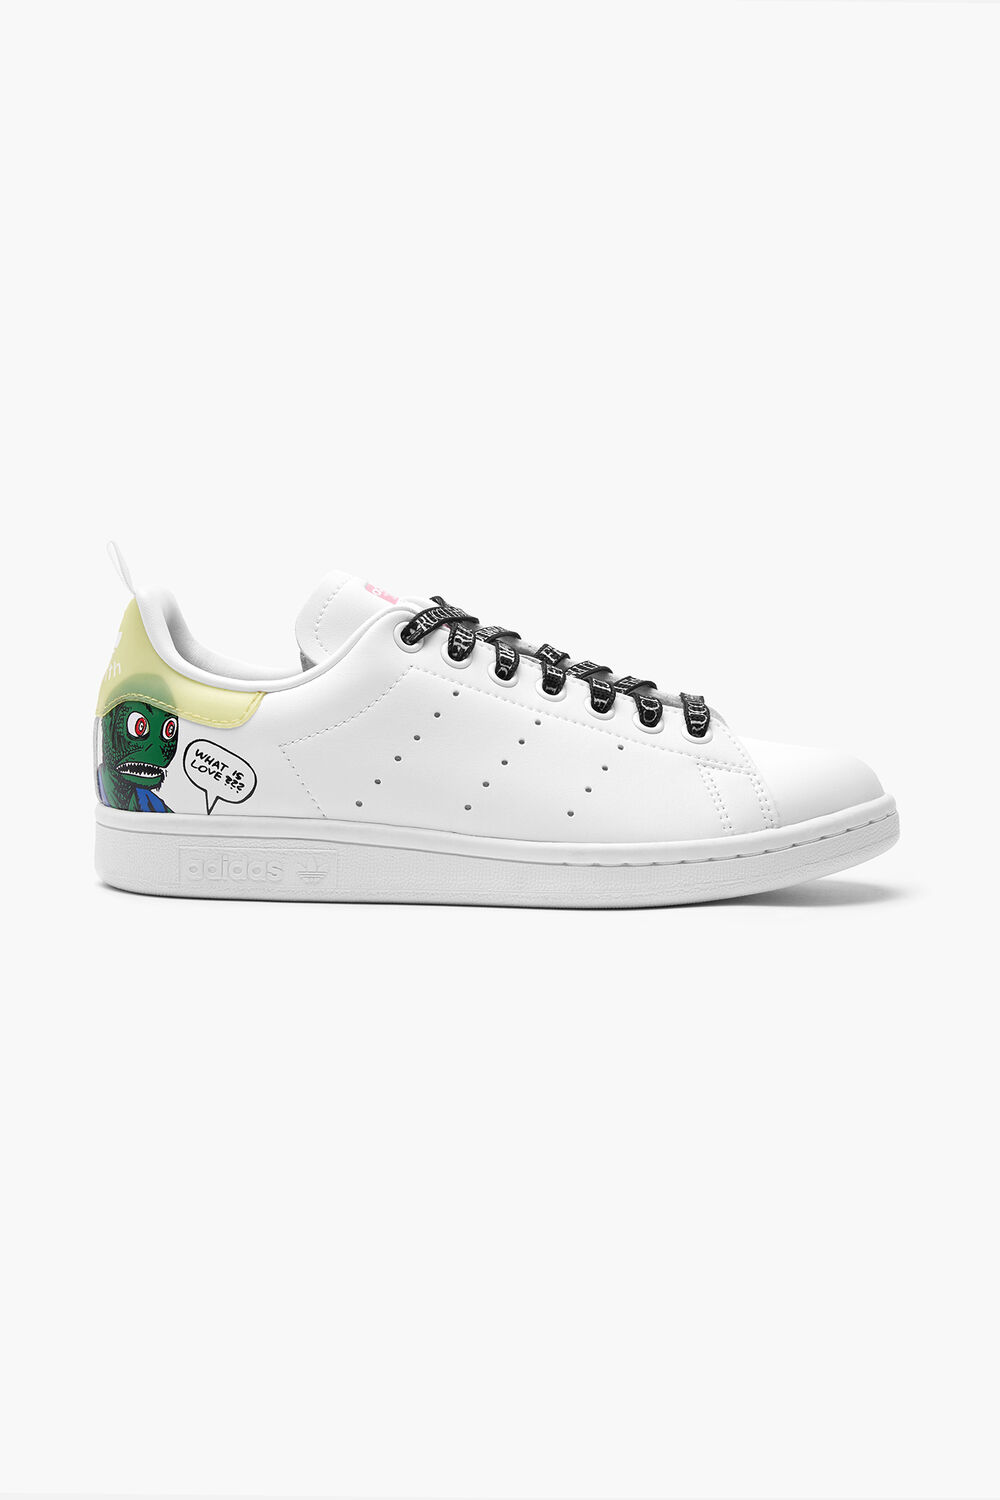 Adidas x Fiorucci Stan Smith Trainer White